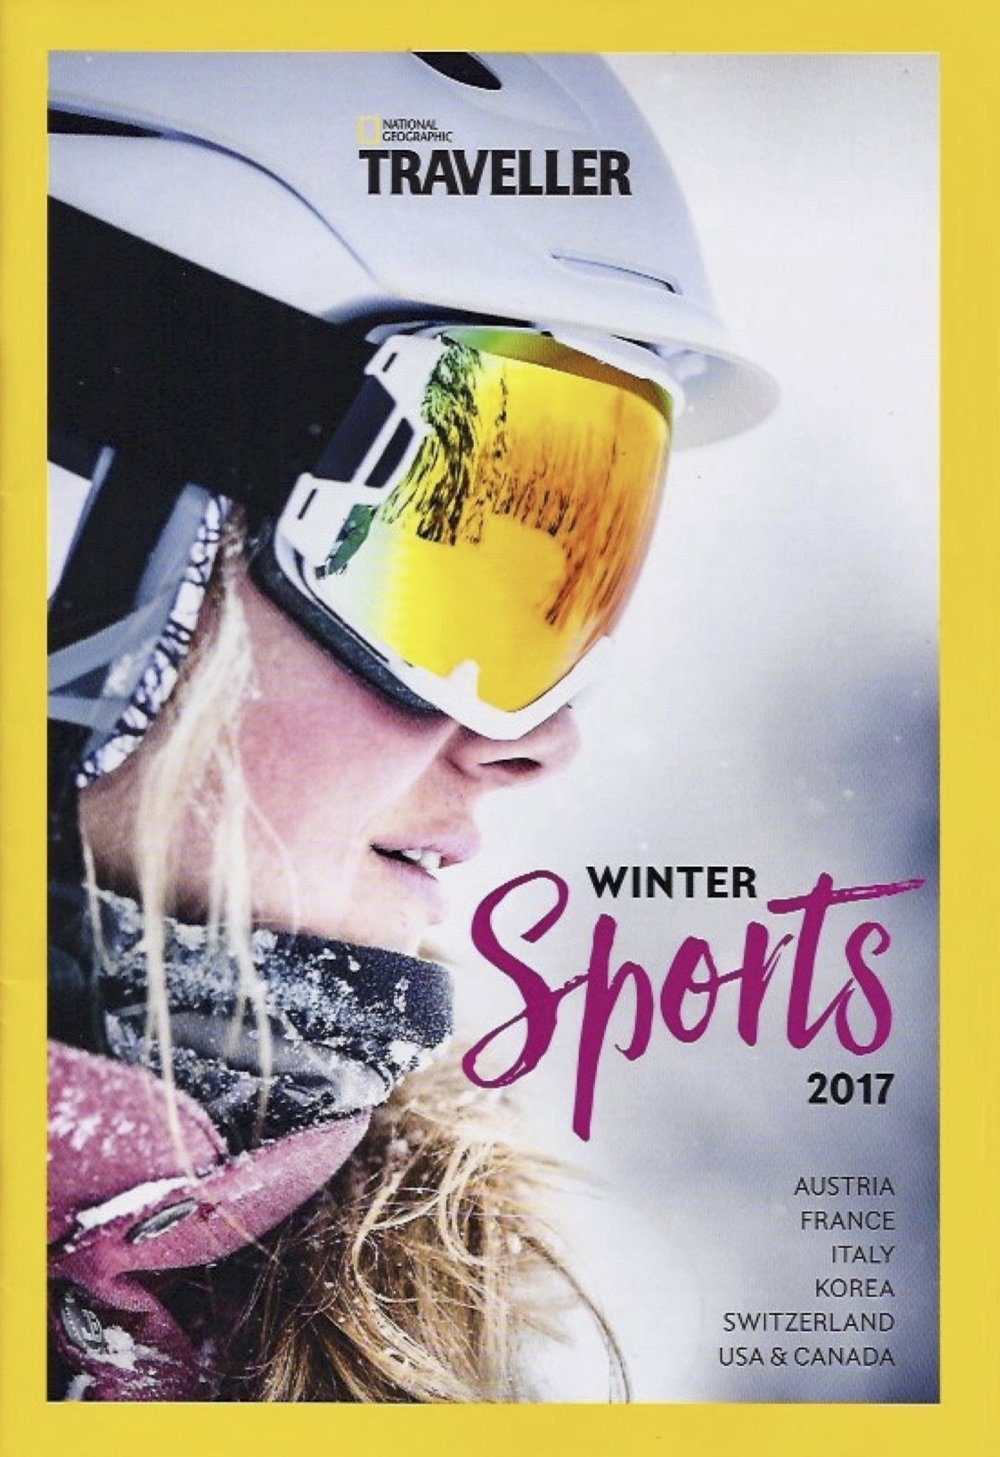 National Geographic_WinterSports_Hotel Walther.jpg